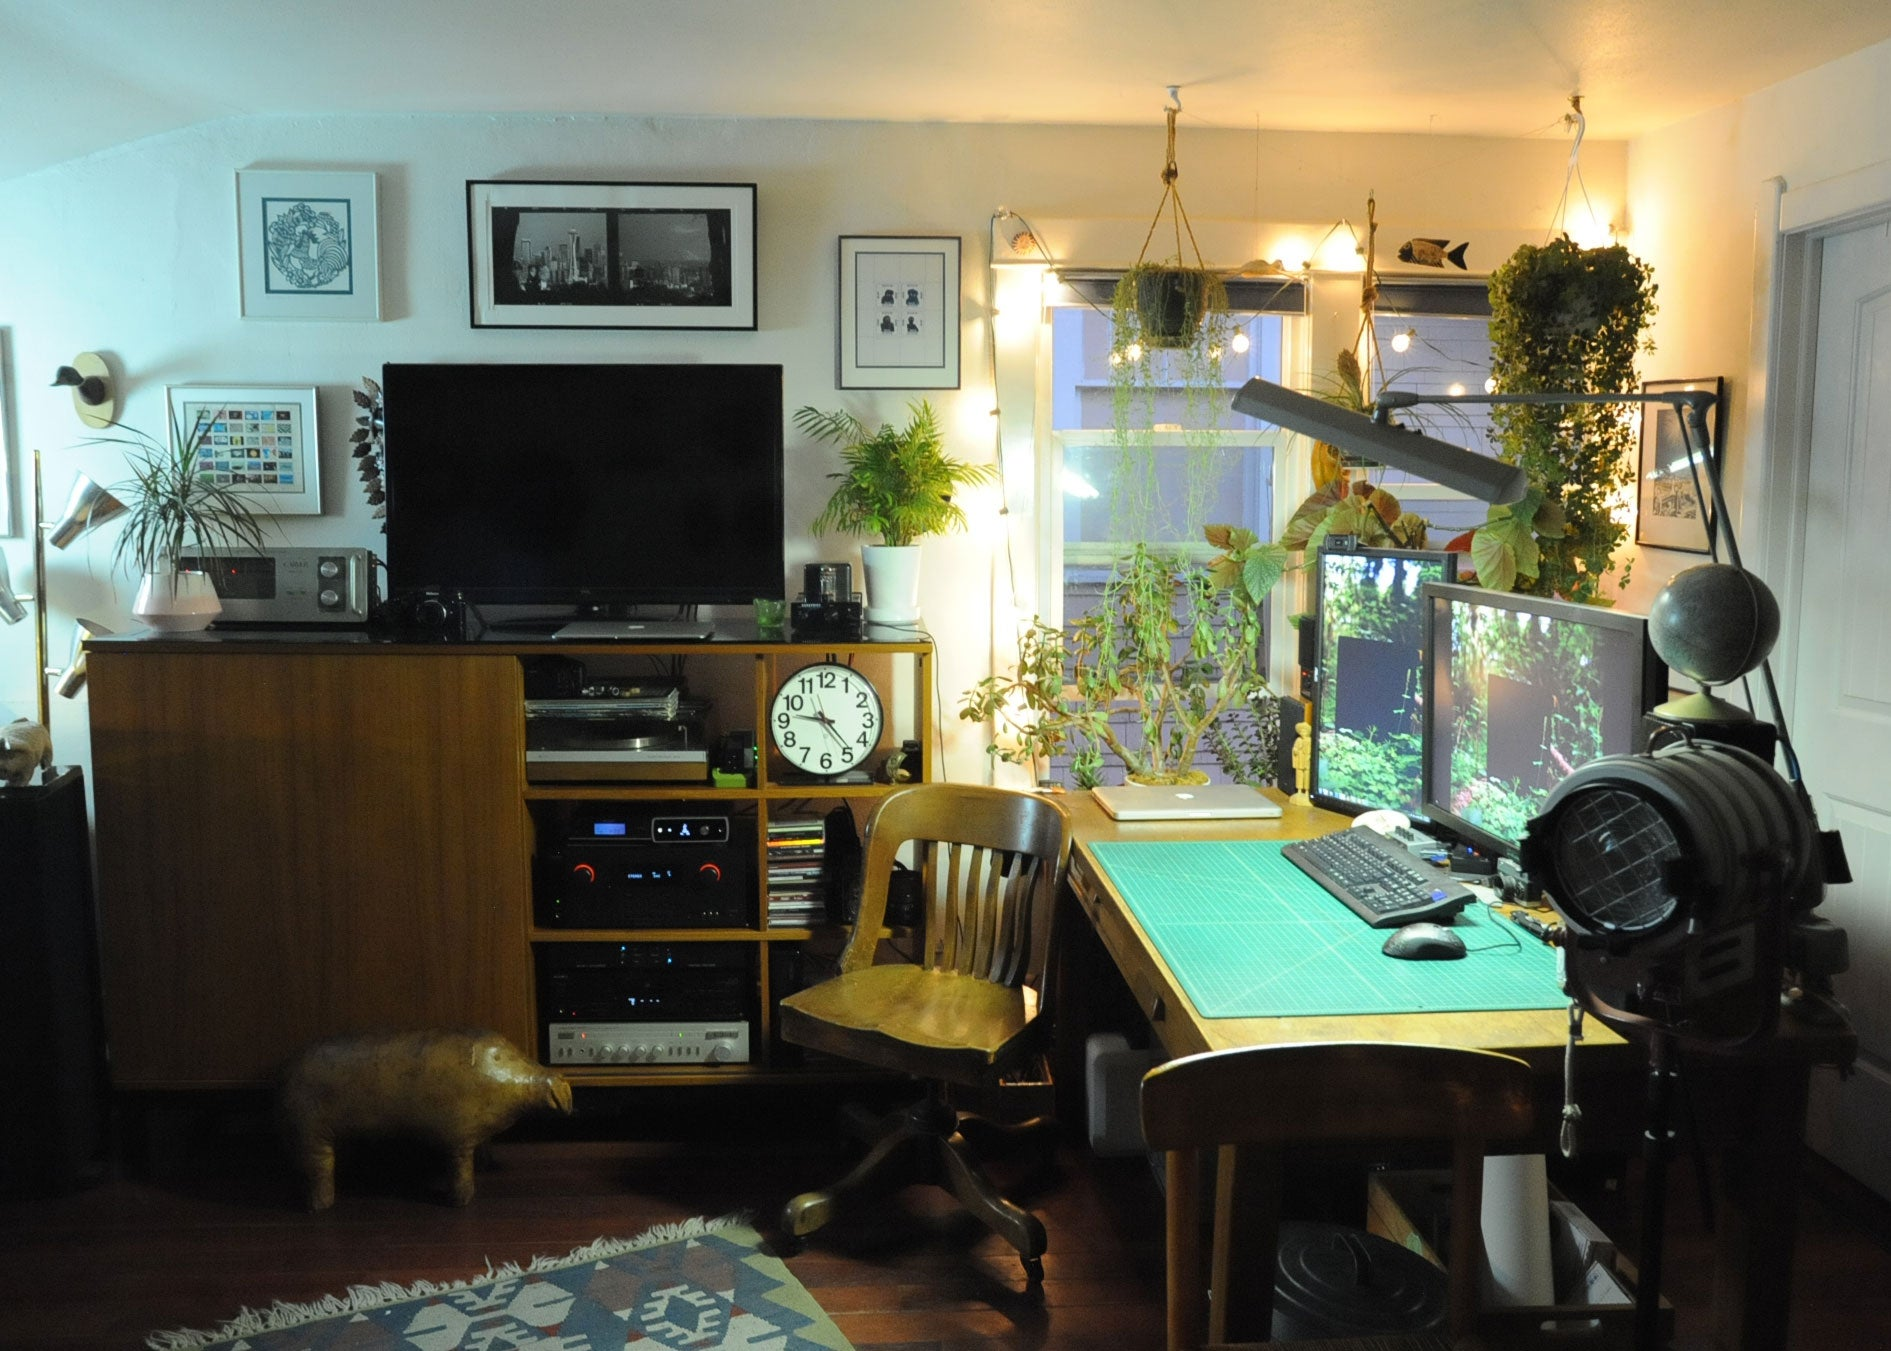 The Audiophile's Workspace